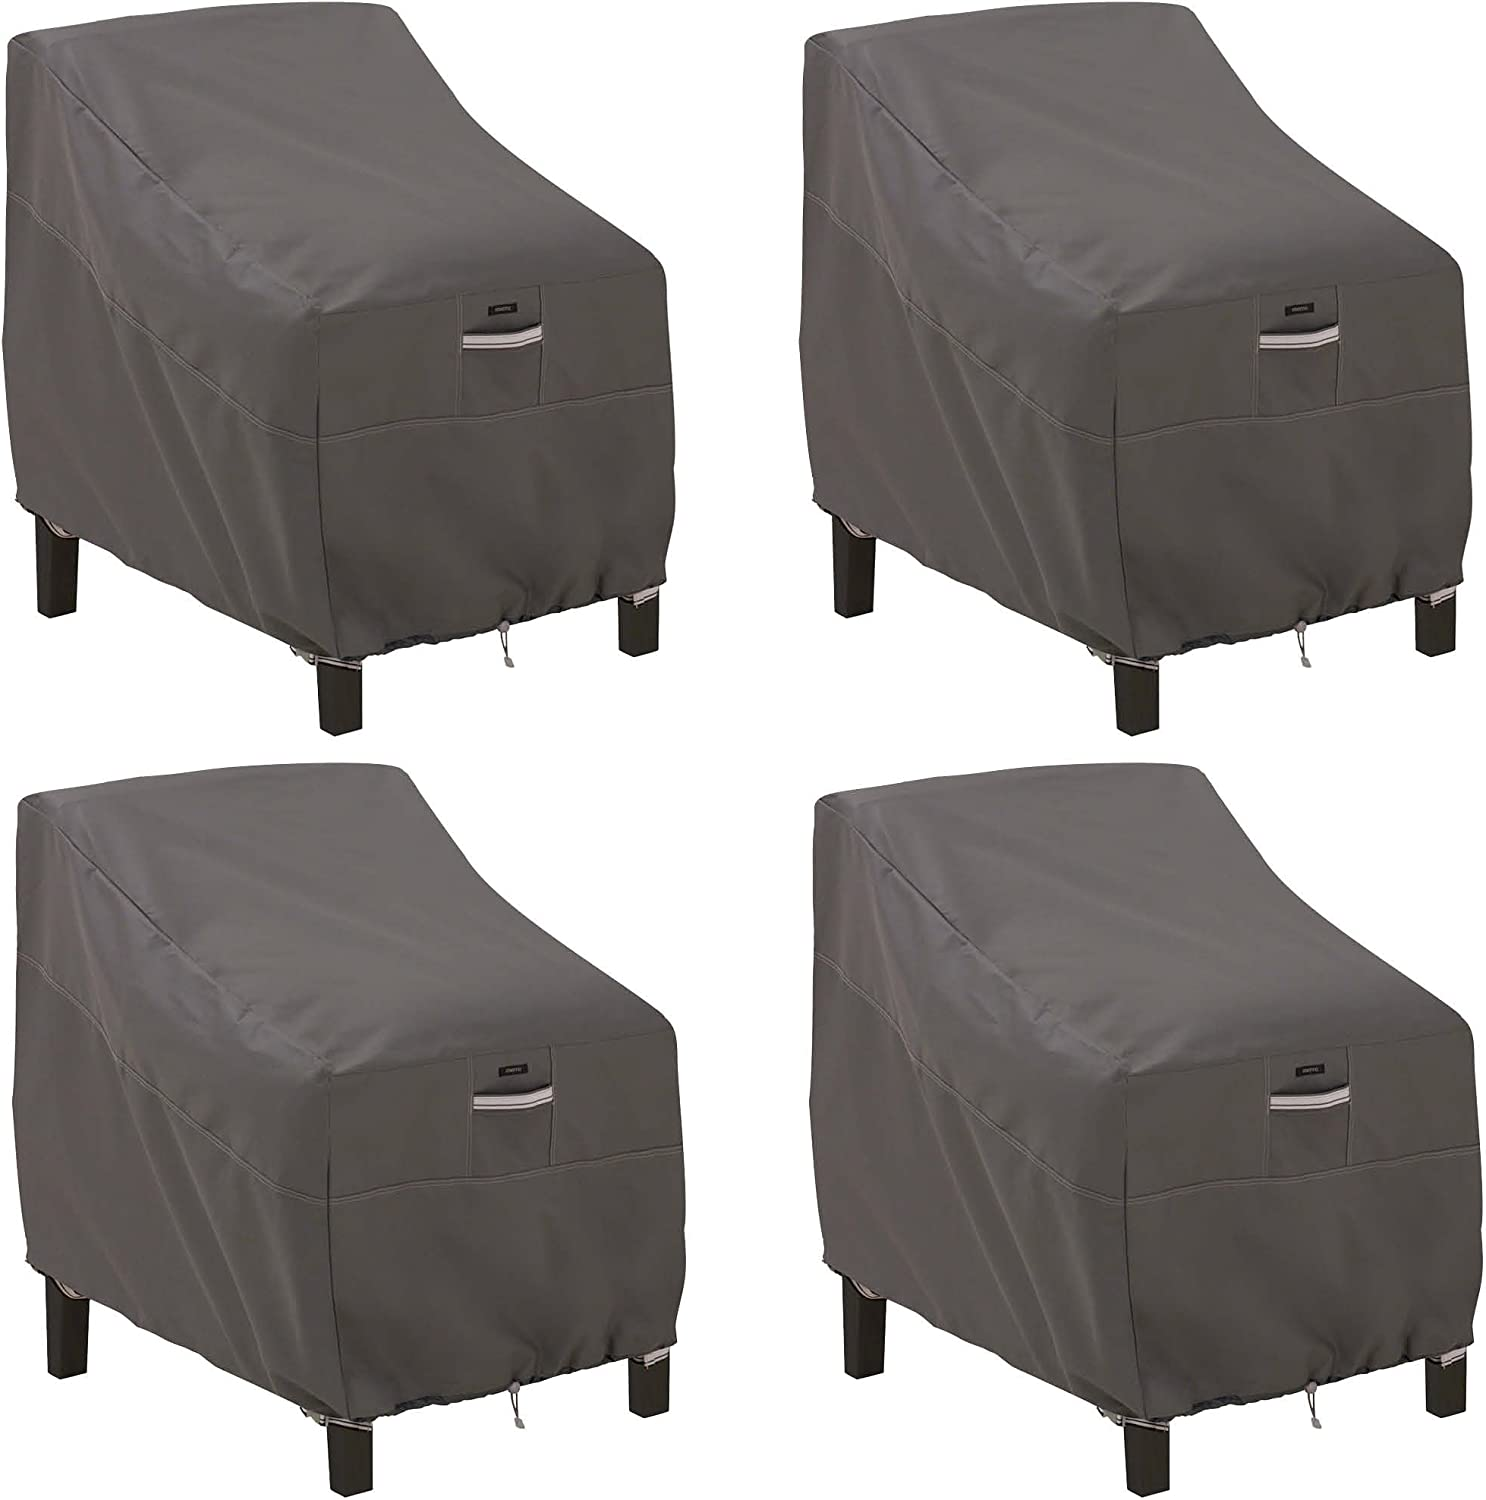 Classic Accessories Ravenna Patio Deep Seat Lounge Chair Cover (4-Pack)